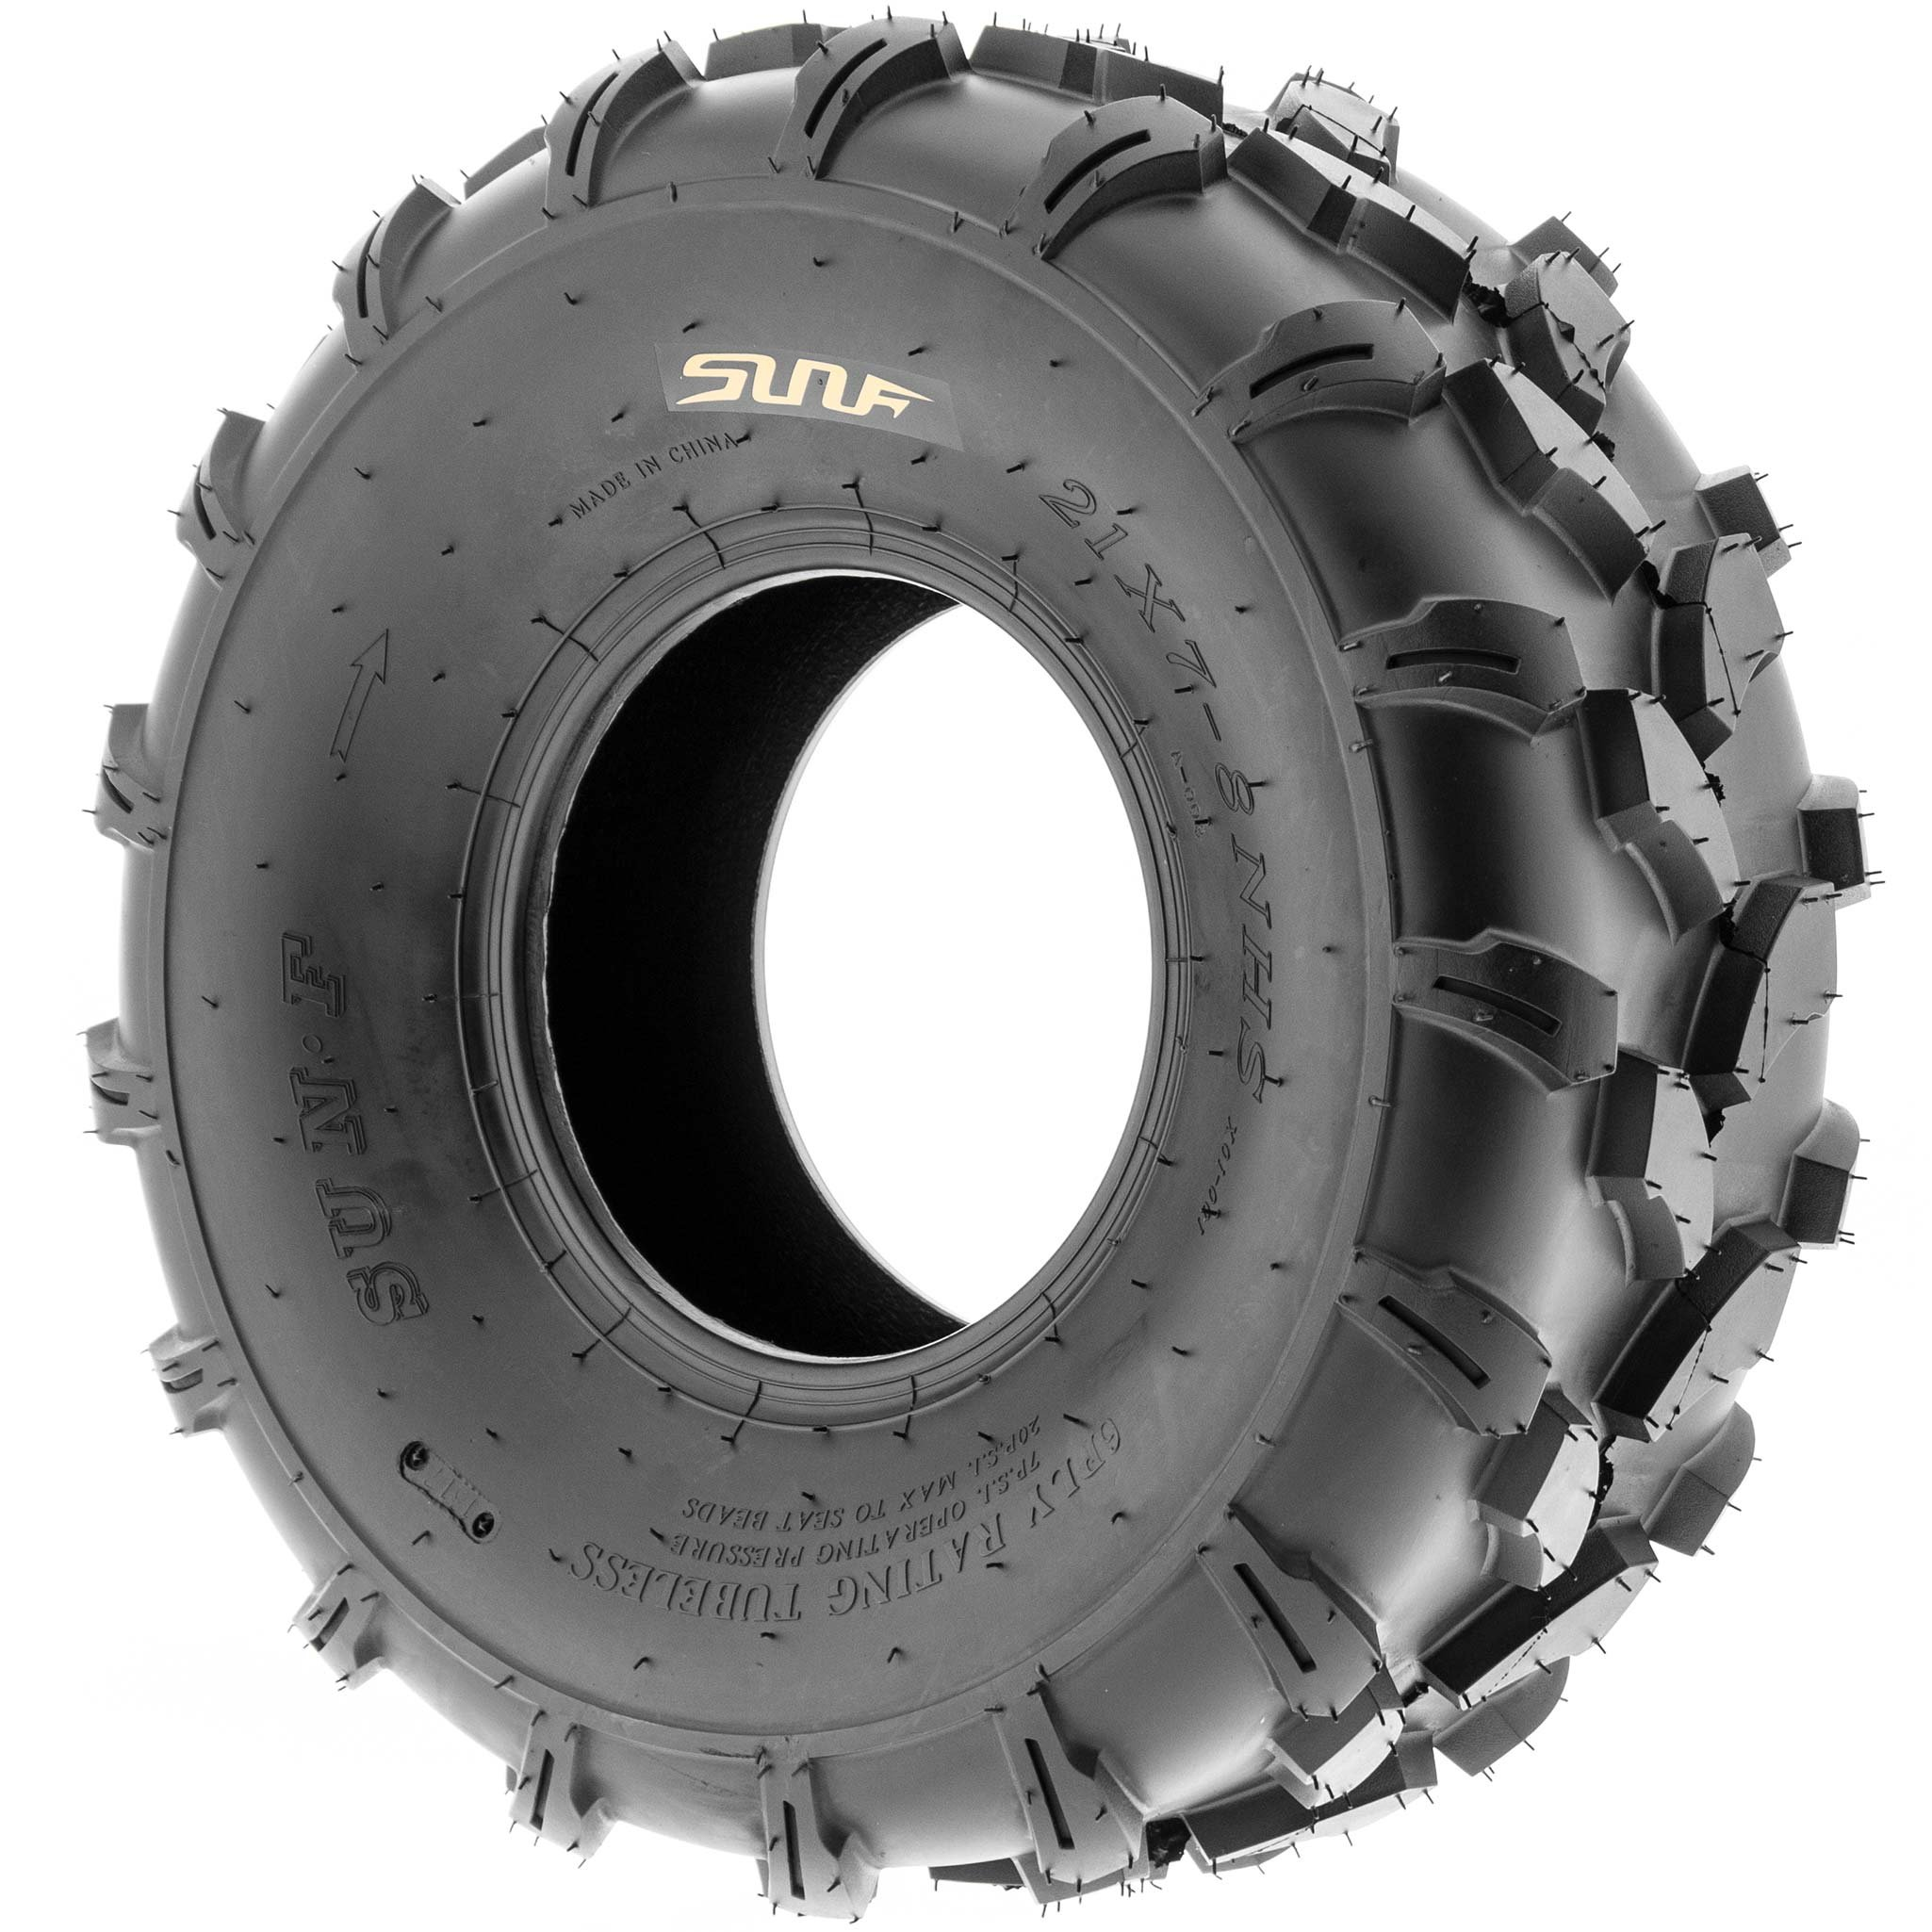 SunF 19x7-8 19x7x8 ATV UTV All Terrain Trail Replacement 6 PR Tubeless Tires A003, [Set of 2] by SUNF (Image #5)